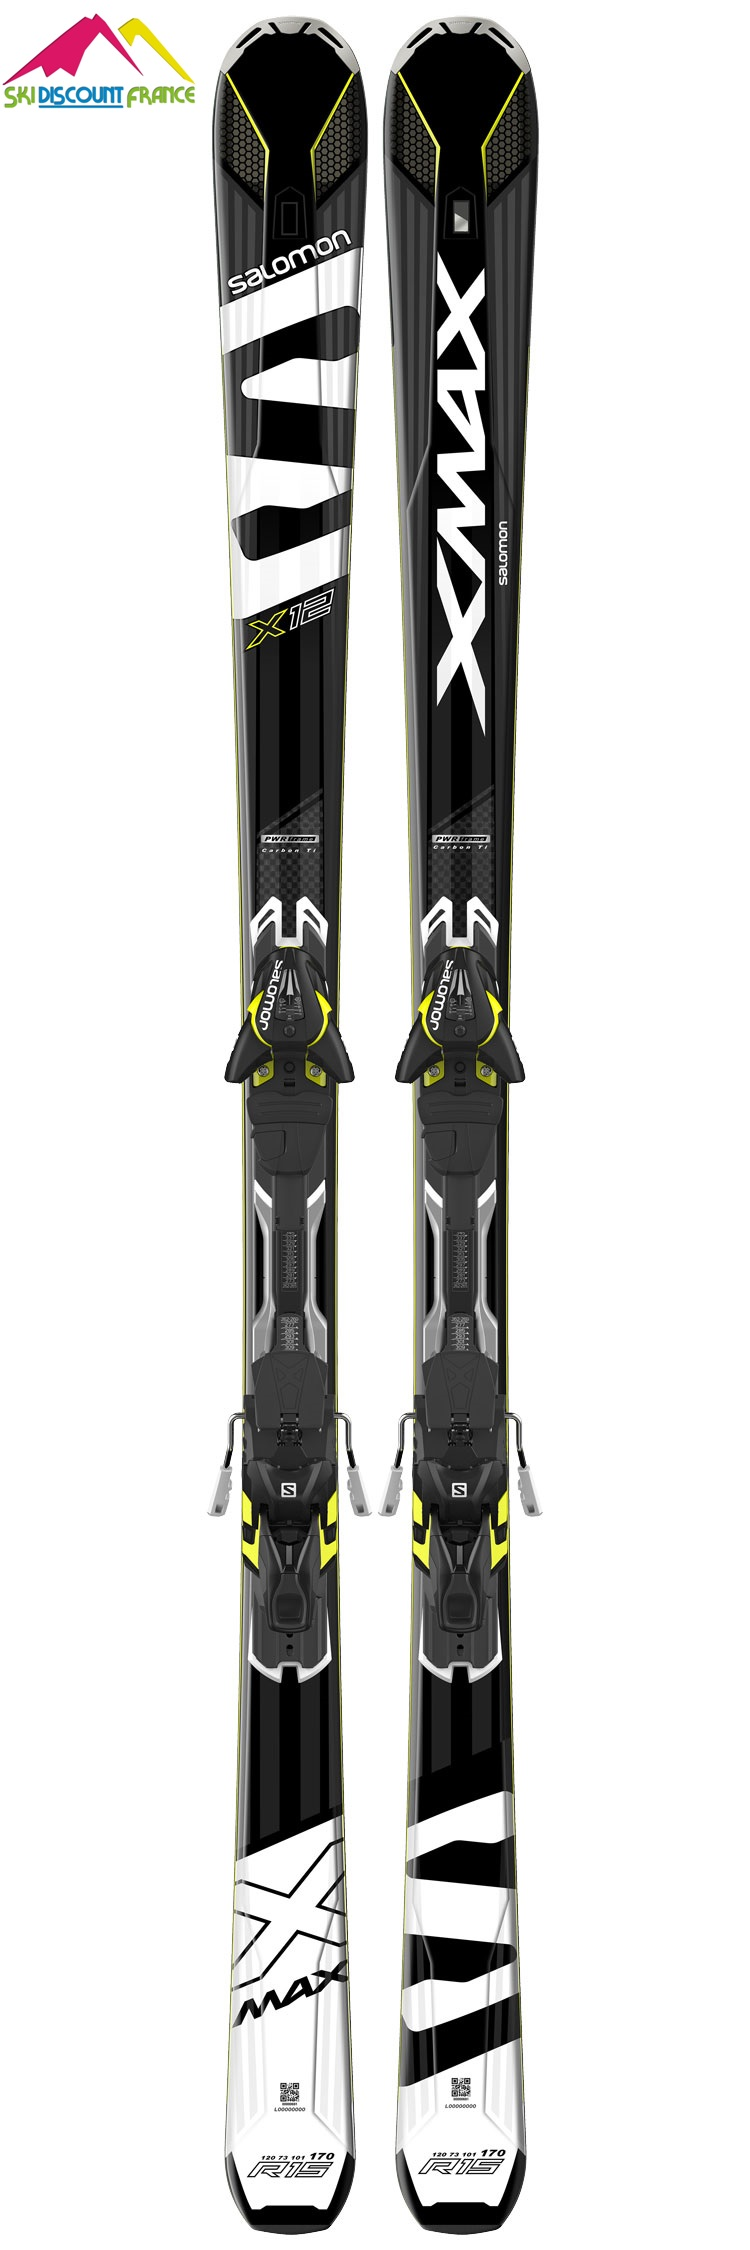 pack ski neuf salomon x max 12 fixations xt12 ski discount 34. Black Bedroom Furniture Sets. Home Design Ideas